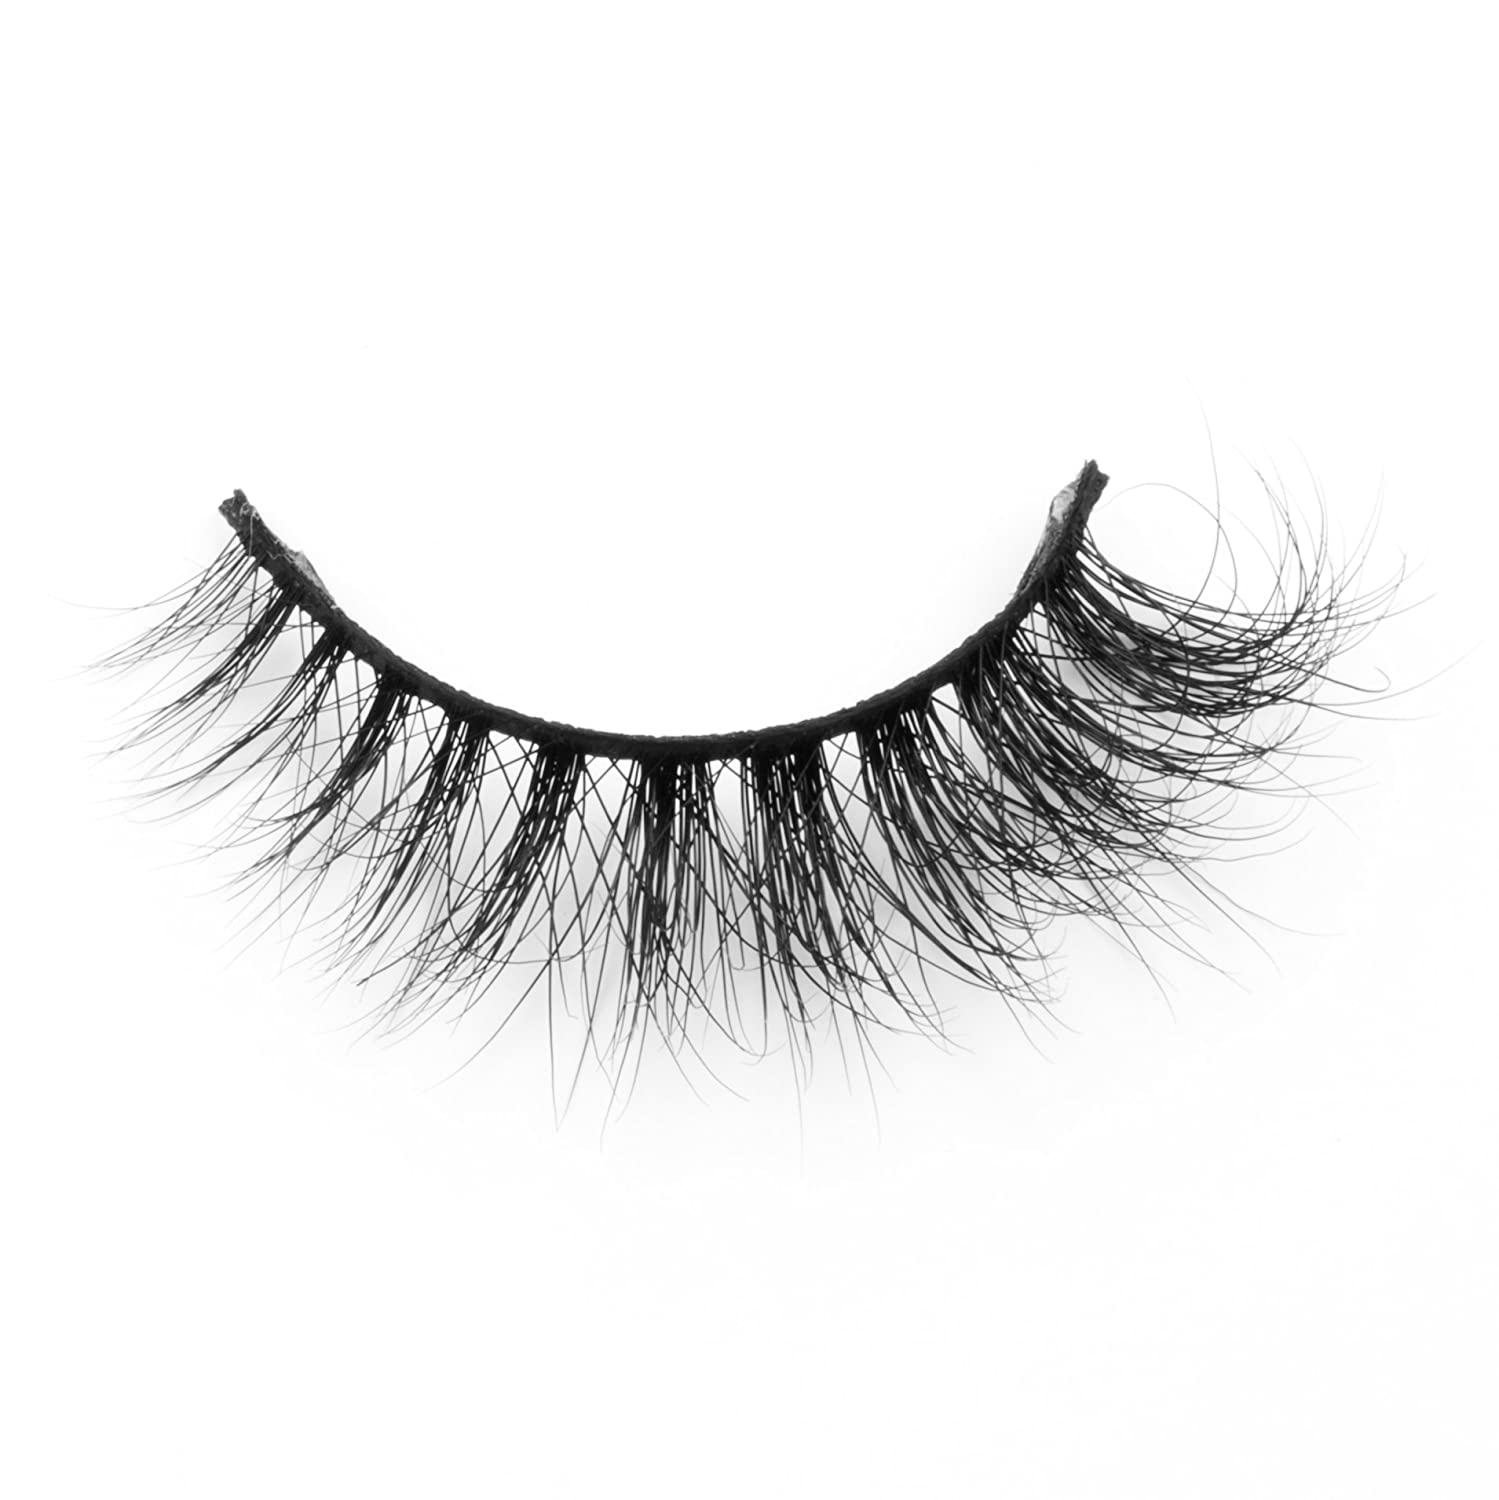 423d4d30424 Amazon.com : Mink Eyelashes Strip Soft Criss Cross Long Faux Mink Lashes  Luxury Christmas False Eyelashes Party for Women by EYEMEI : Beauty